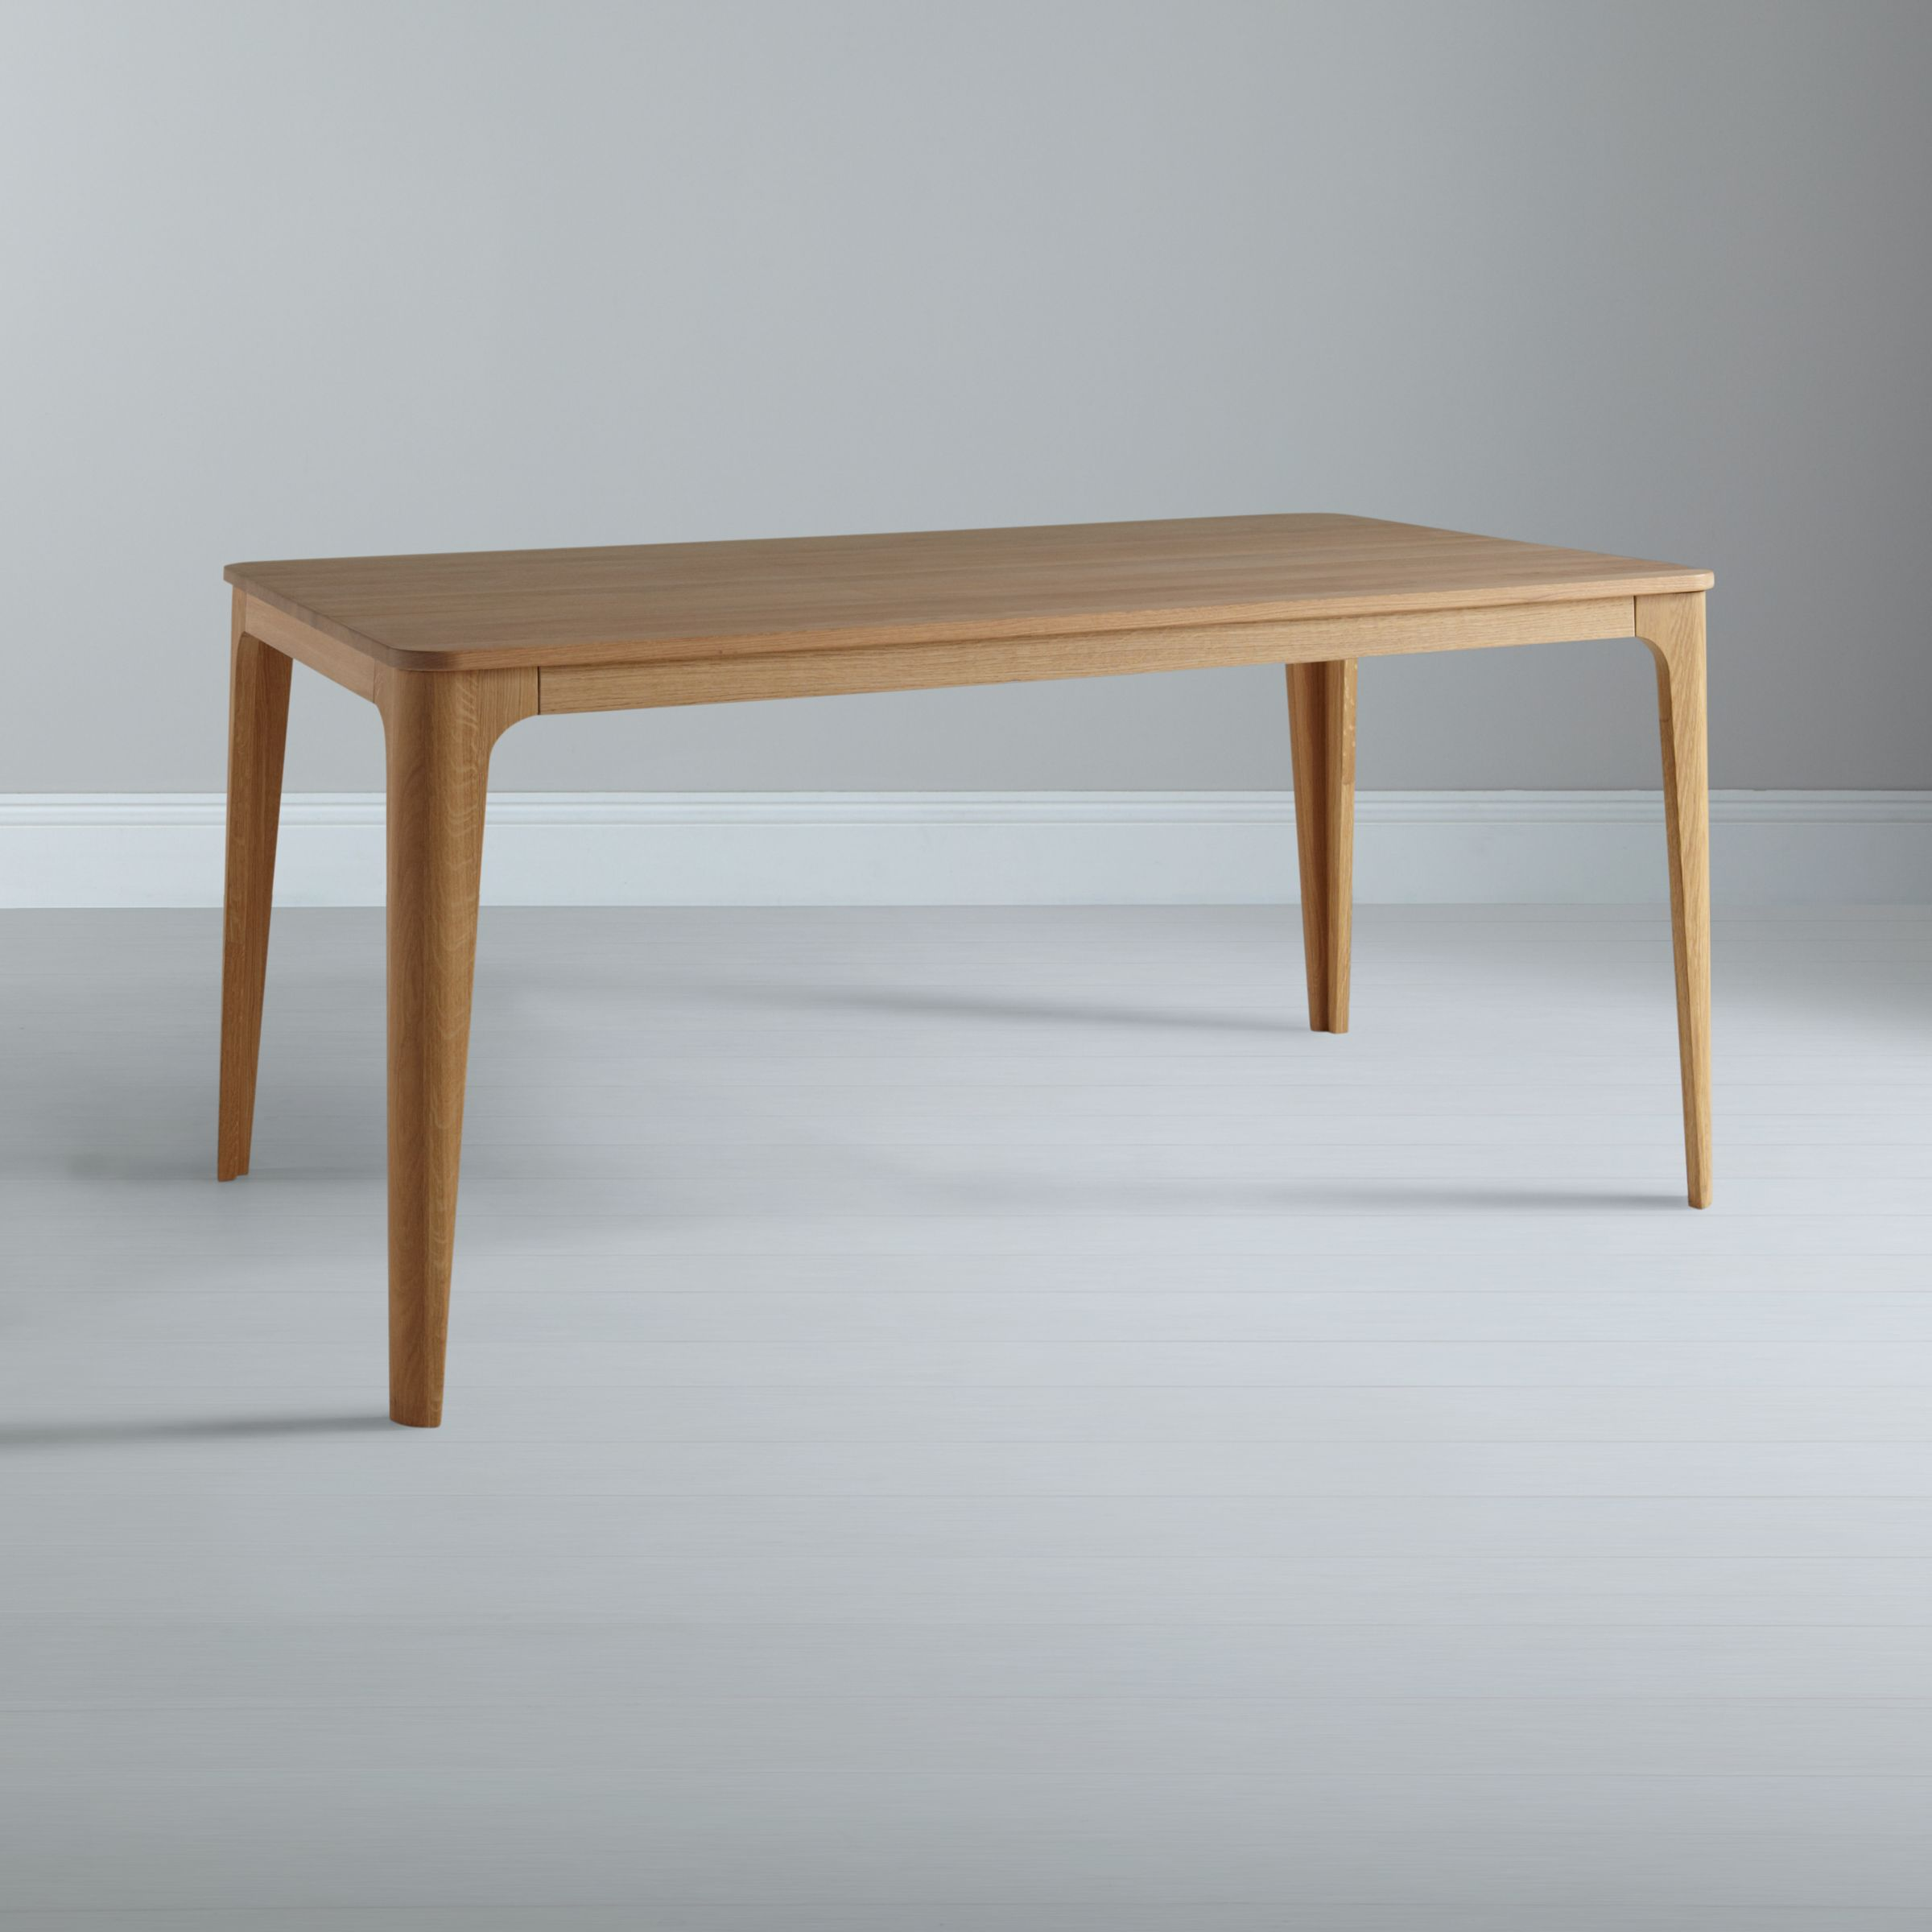 Dining Table With Chairs John Lewis Simple john lewis  : 230942315 from ubermed.us size 1600 x 1600 jpeg 166kB